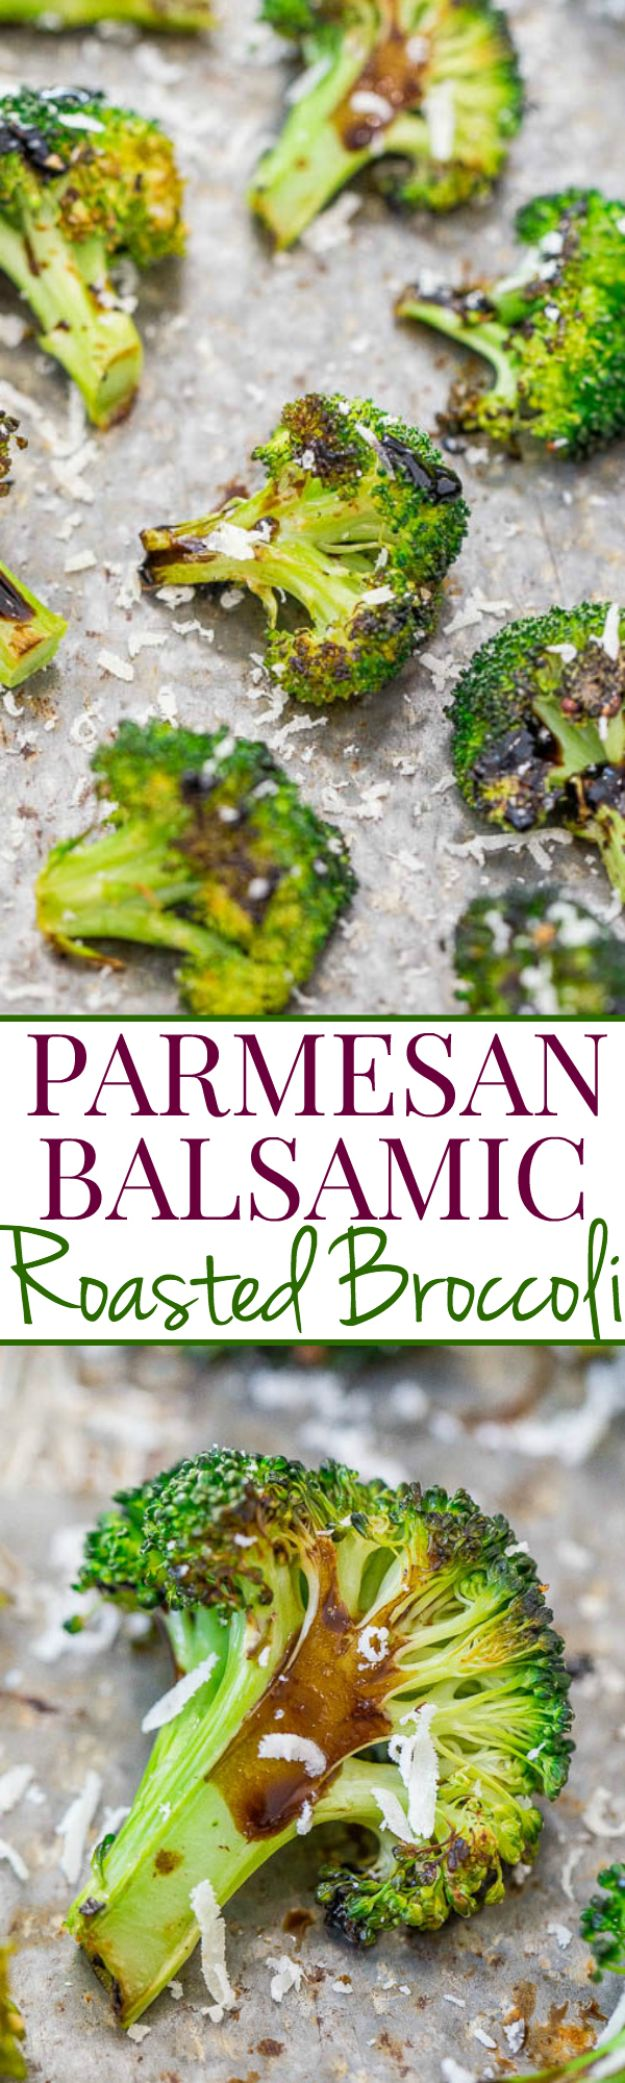 Best Broccoli Recipes - Parmesan Balsamic Roasted Broccoli - Recipe Ideas for Roasted, Steamed, Fresh or Frozen, Healthy, Cheesy, Soup, Salad, Casseroles and Side Dish Vegetables Made With Broccoli. Shrimp, Chicken, Pasta and Paleo Recipes. Easy Dinner, healthy vegetable recipes